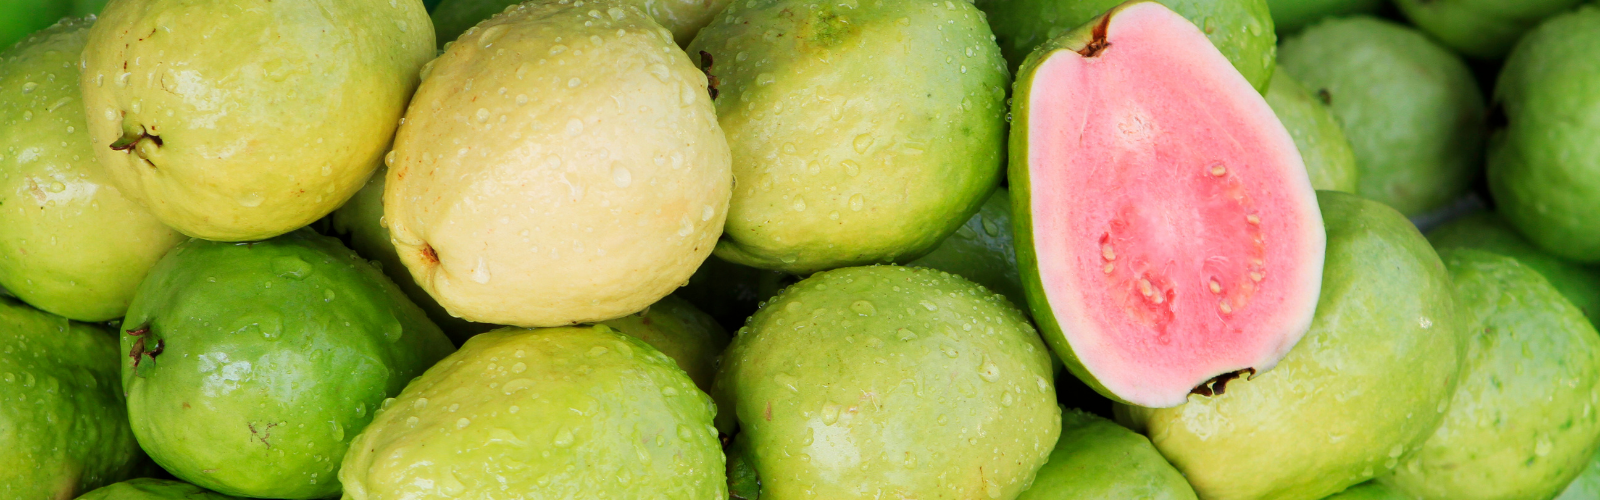 guava for sperm count and motility